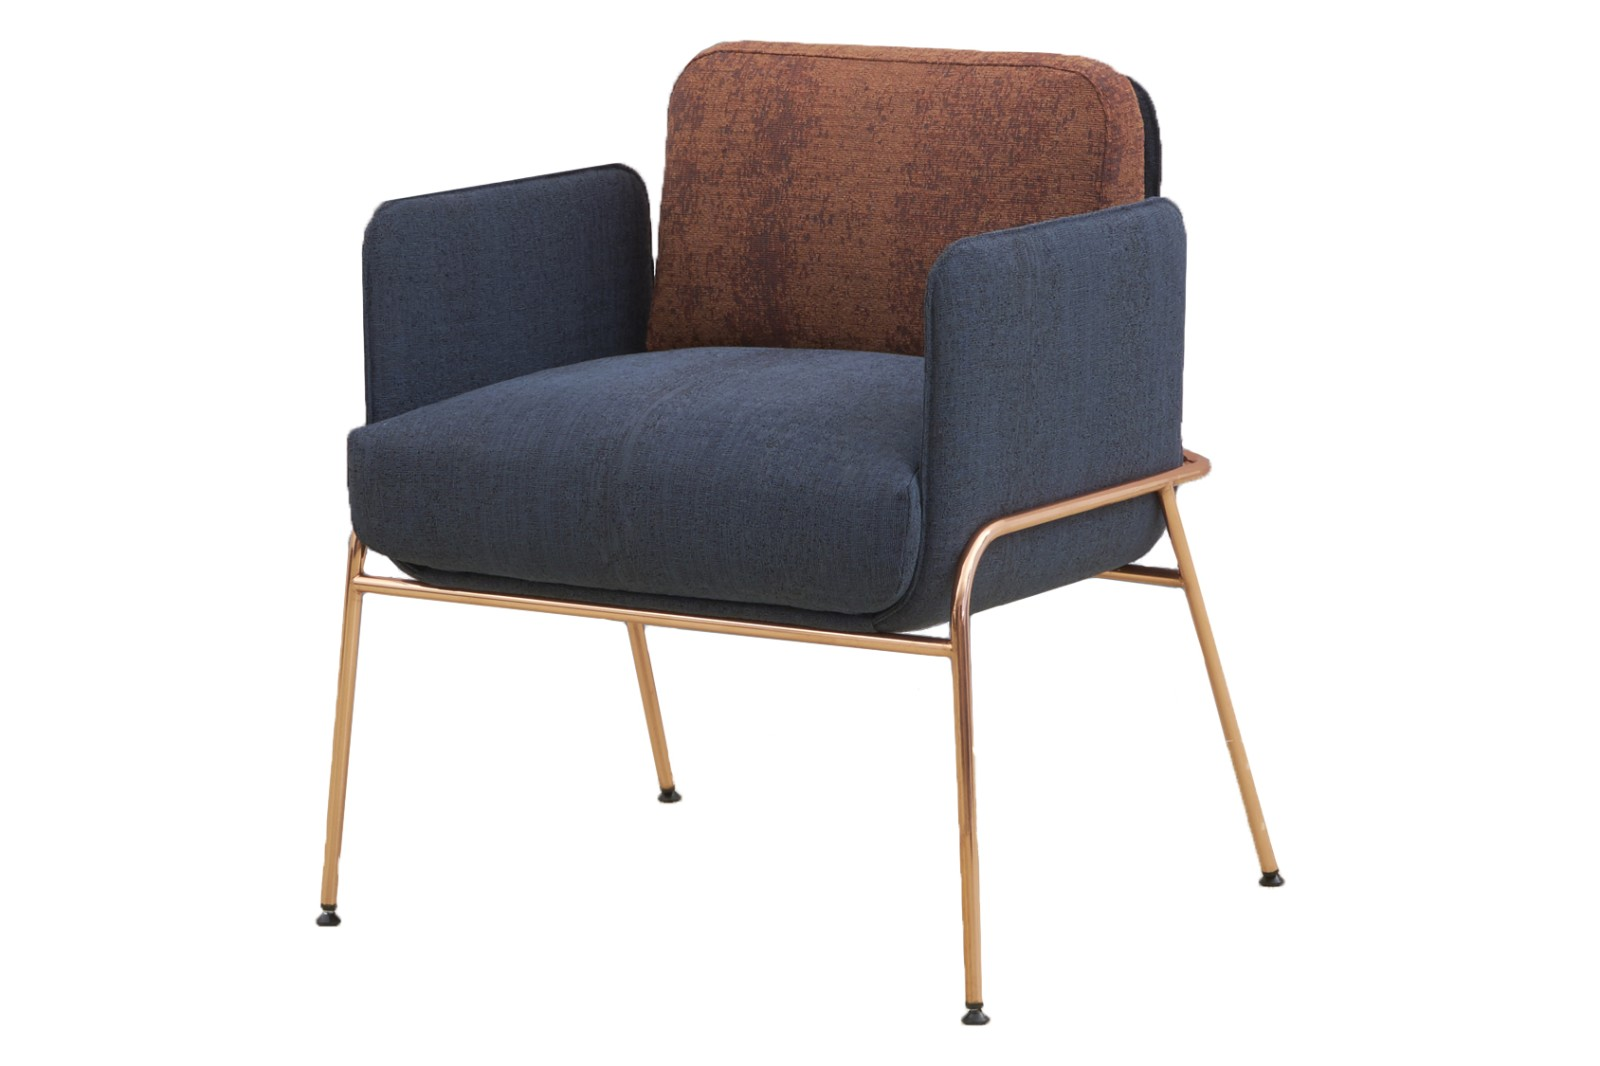 HM10F FLIX 4-Leg Armchair Camira Halcyon Collection Bronze Plating Legs